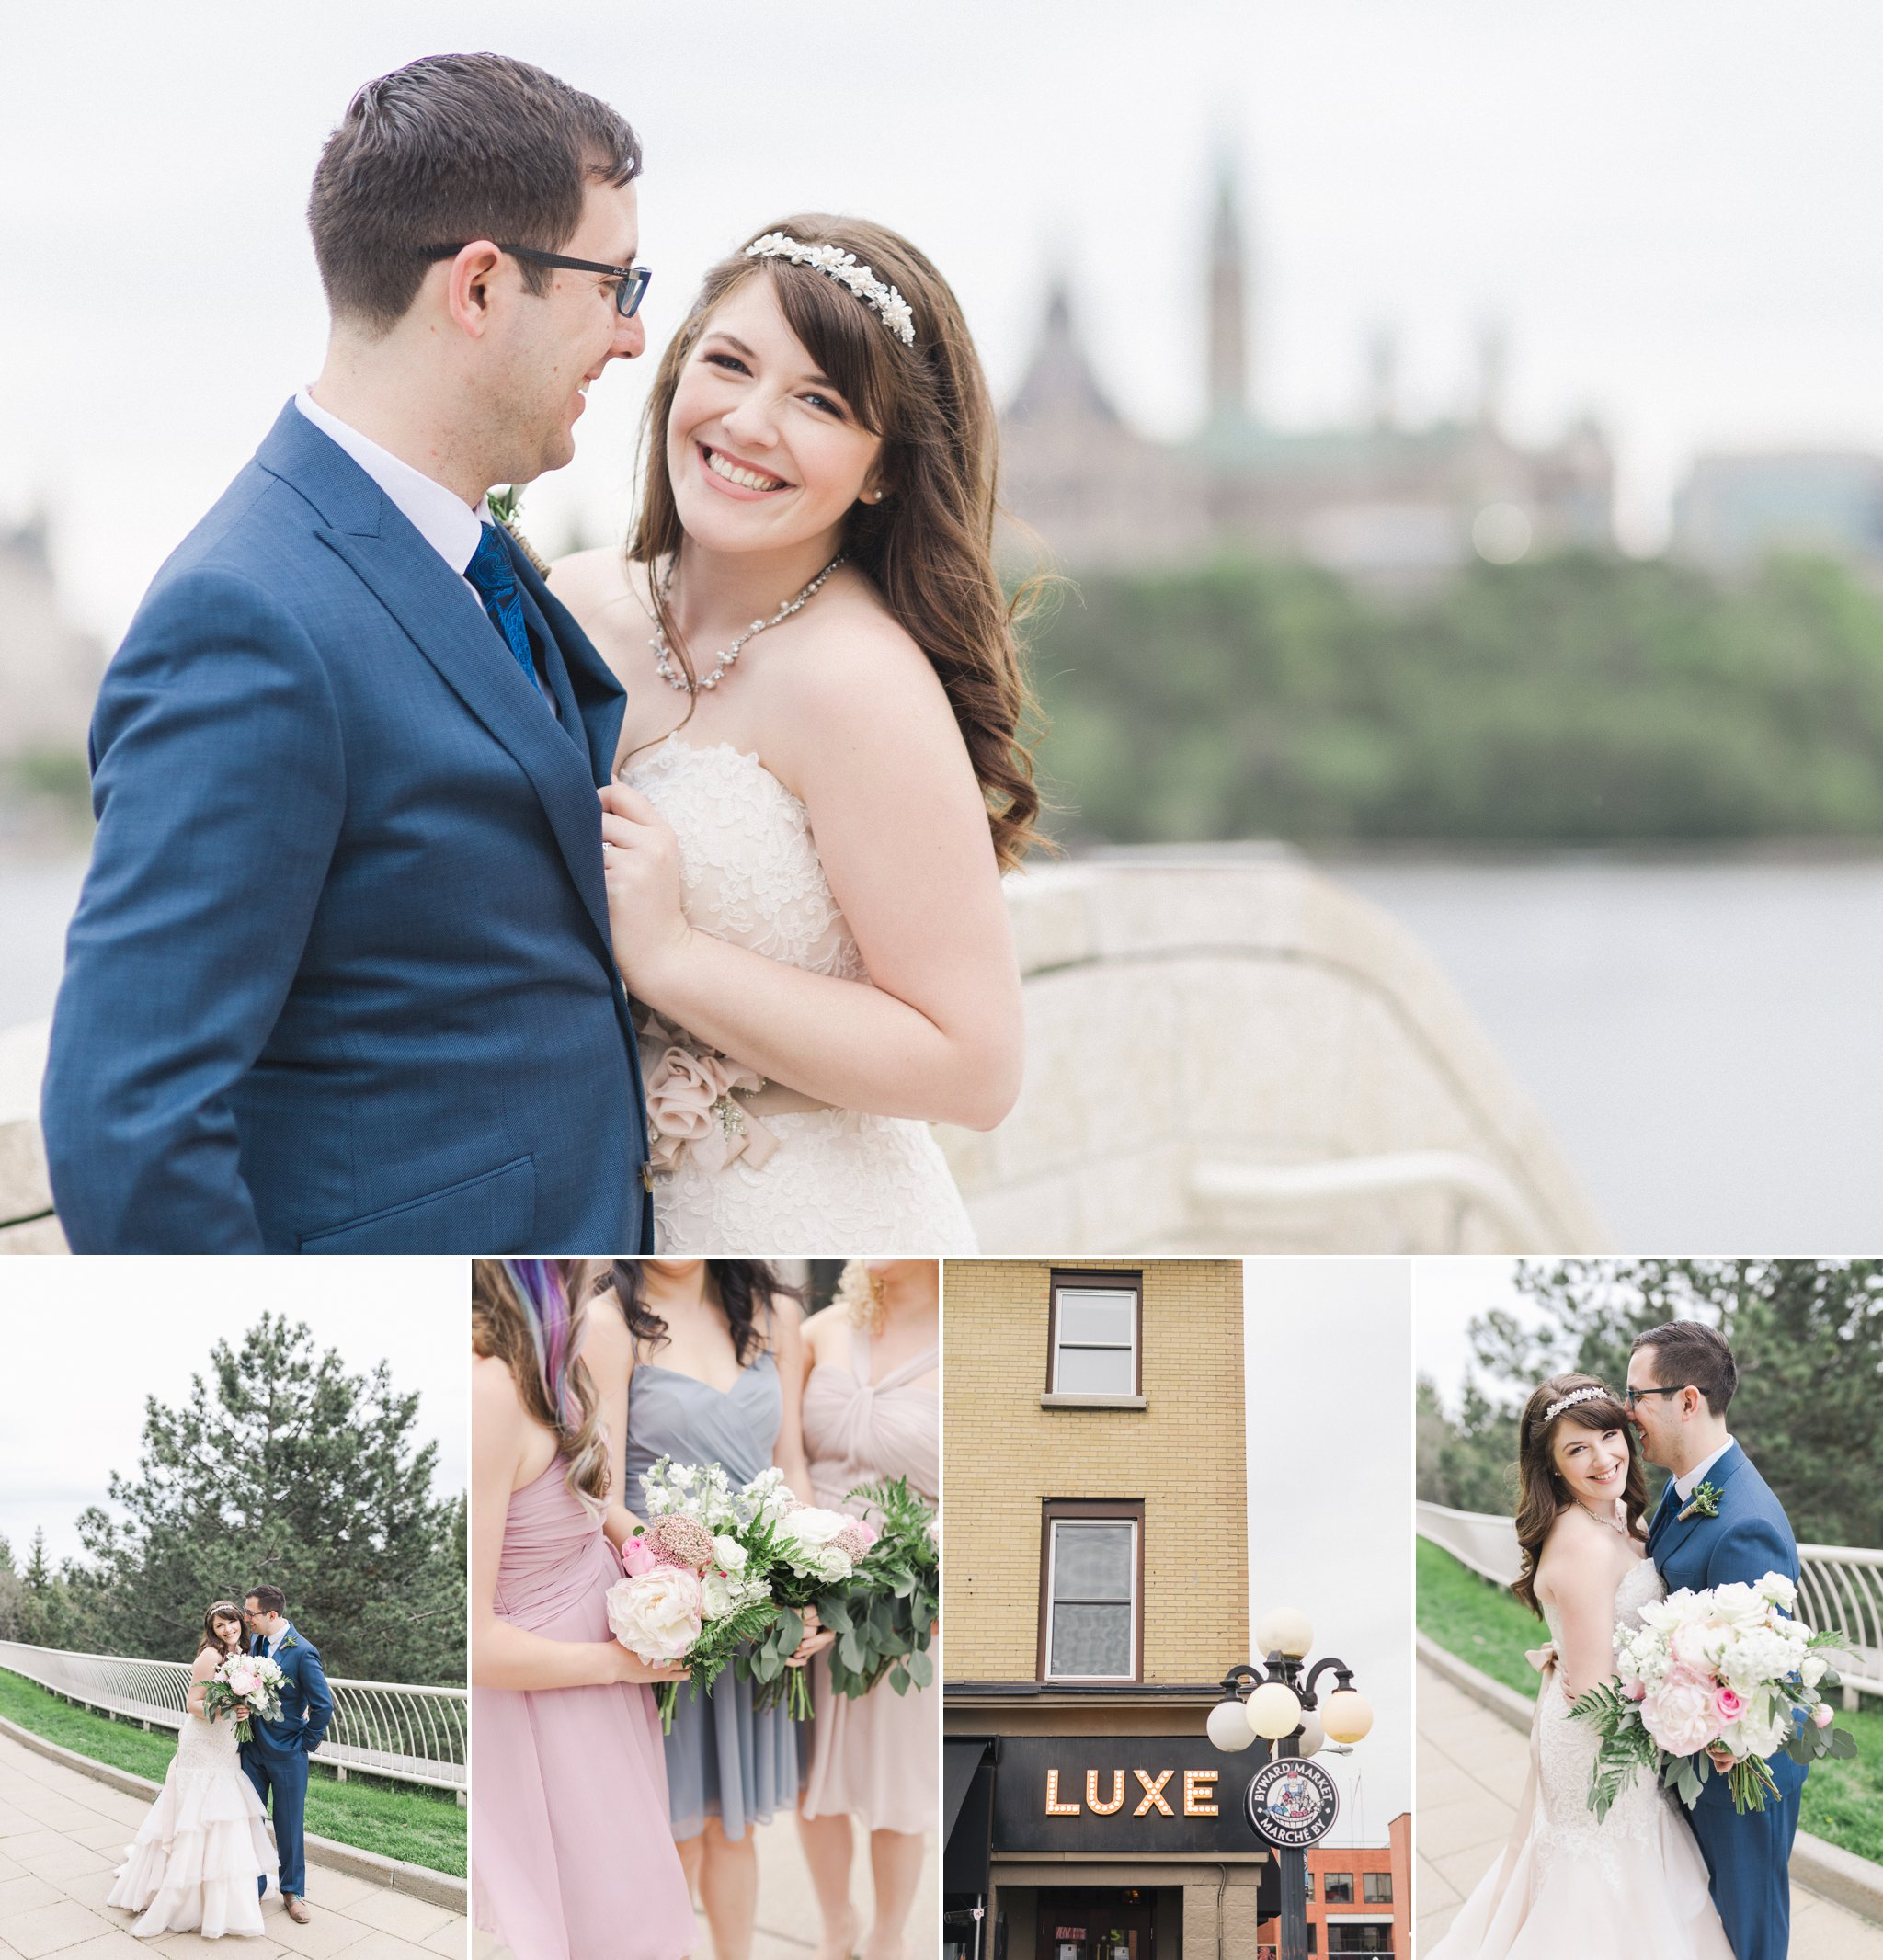 Luxe Bistro restaurant wedding in downtown Ottawa